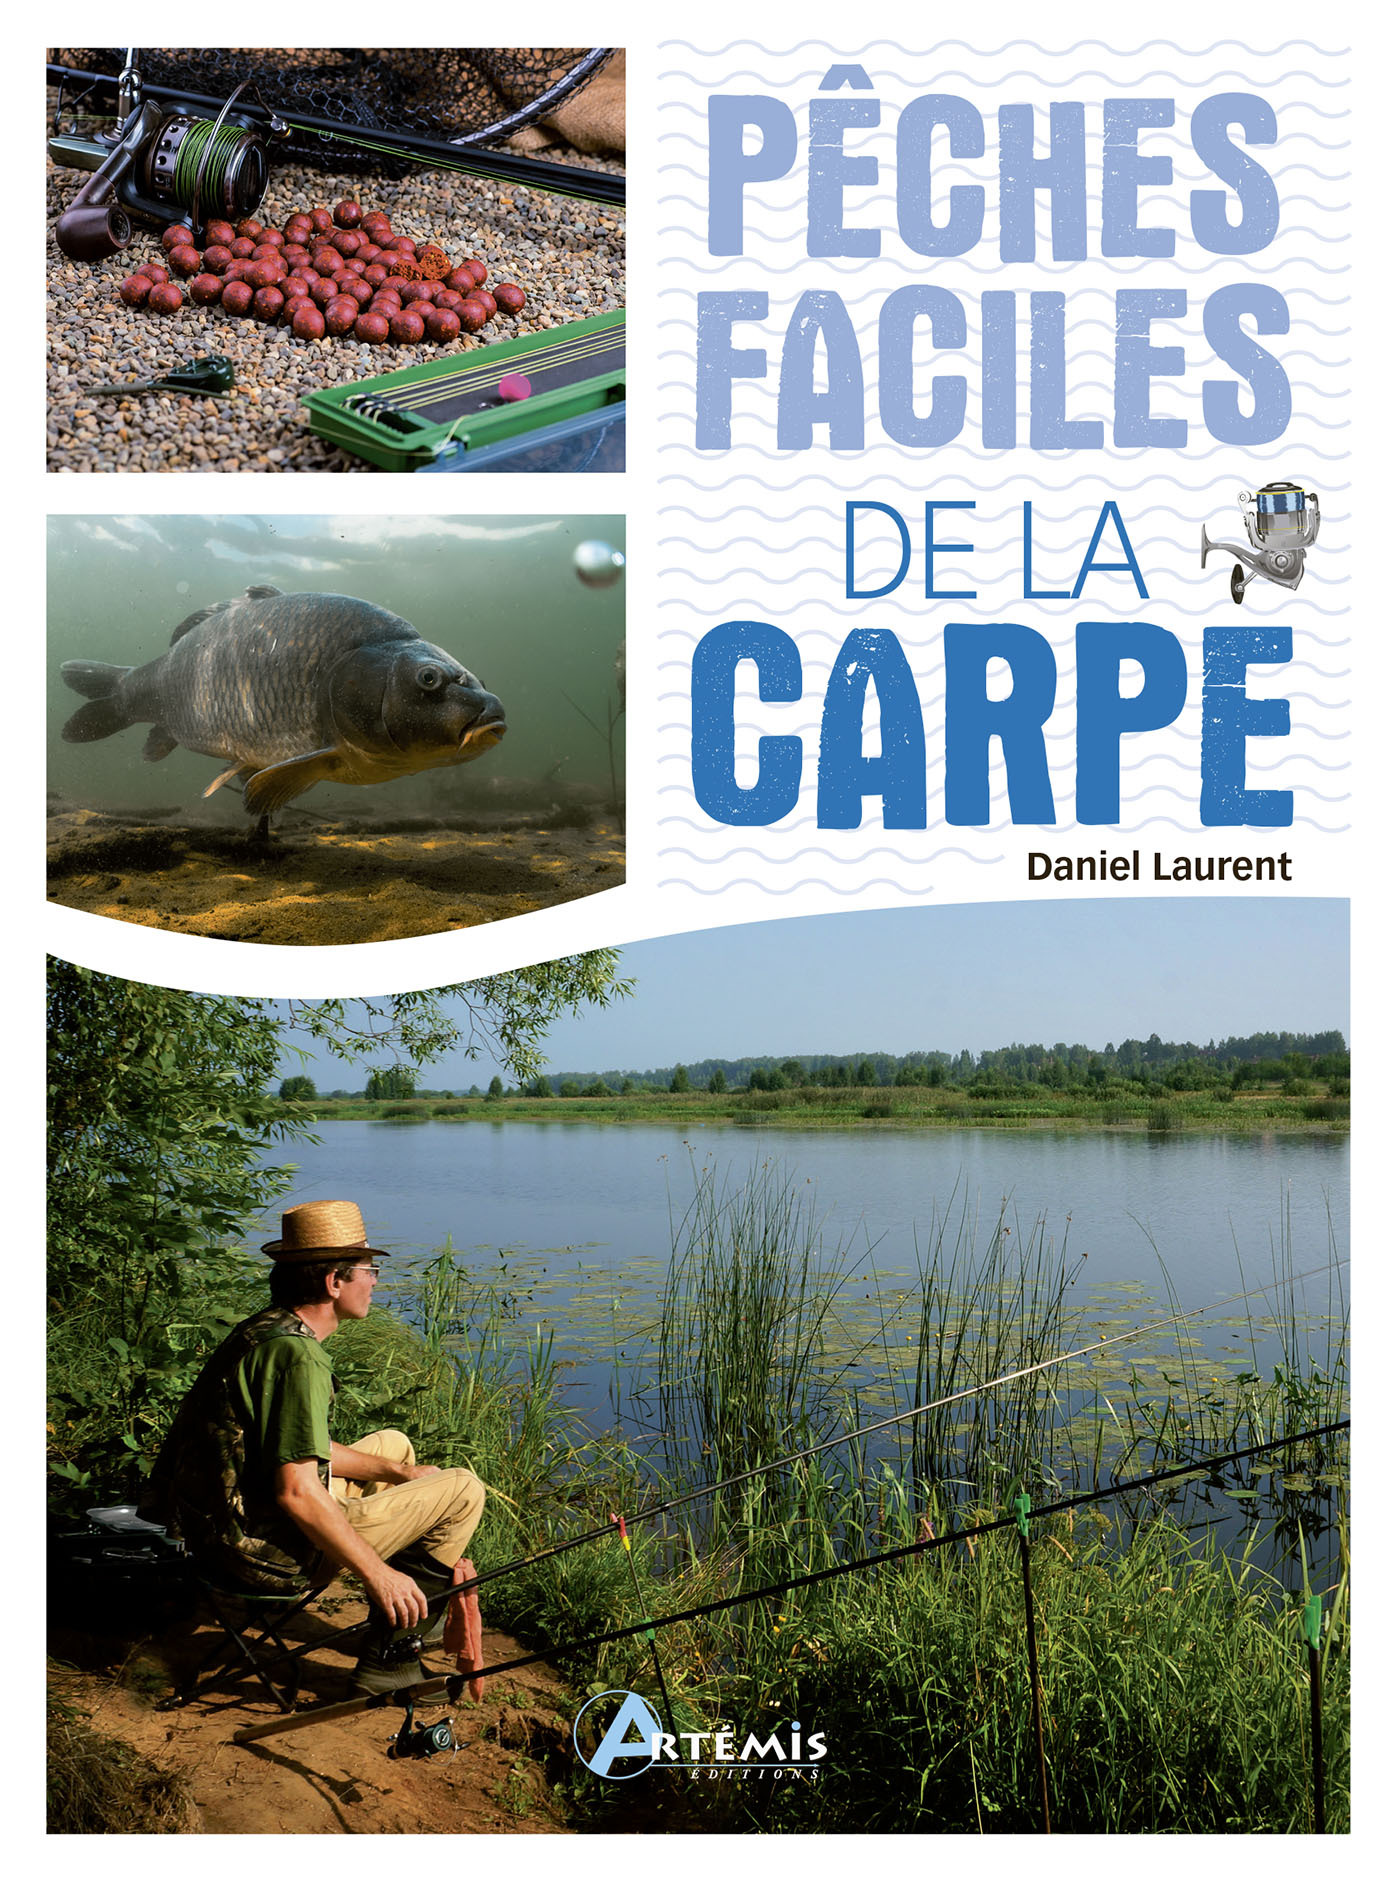 PECHES FACILES DE LA CARPE